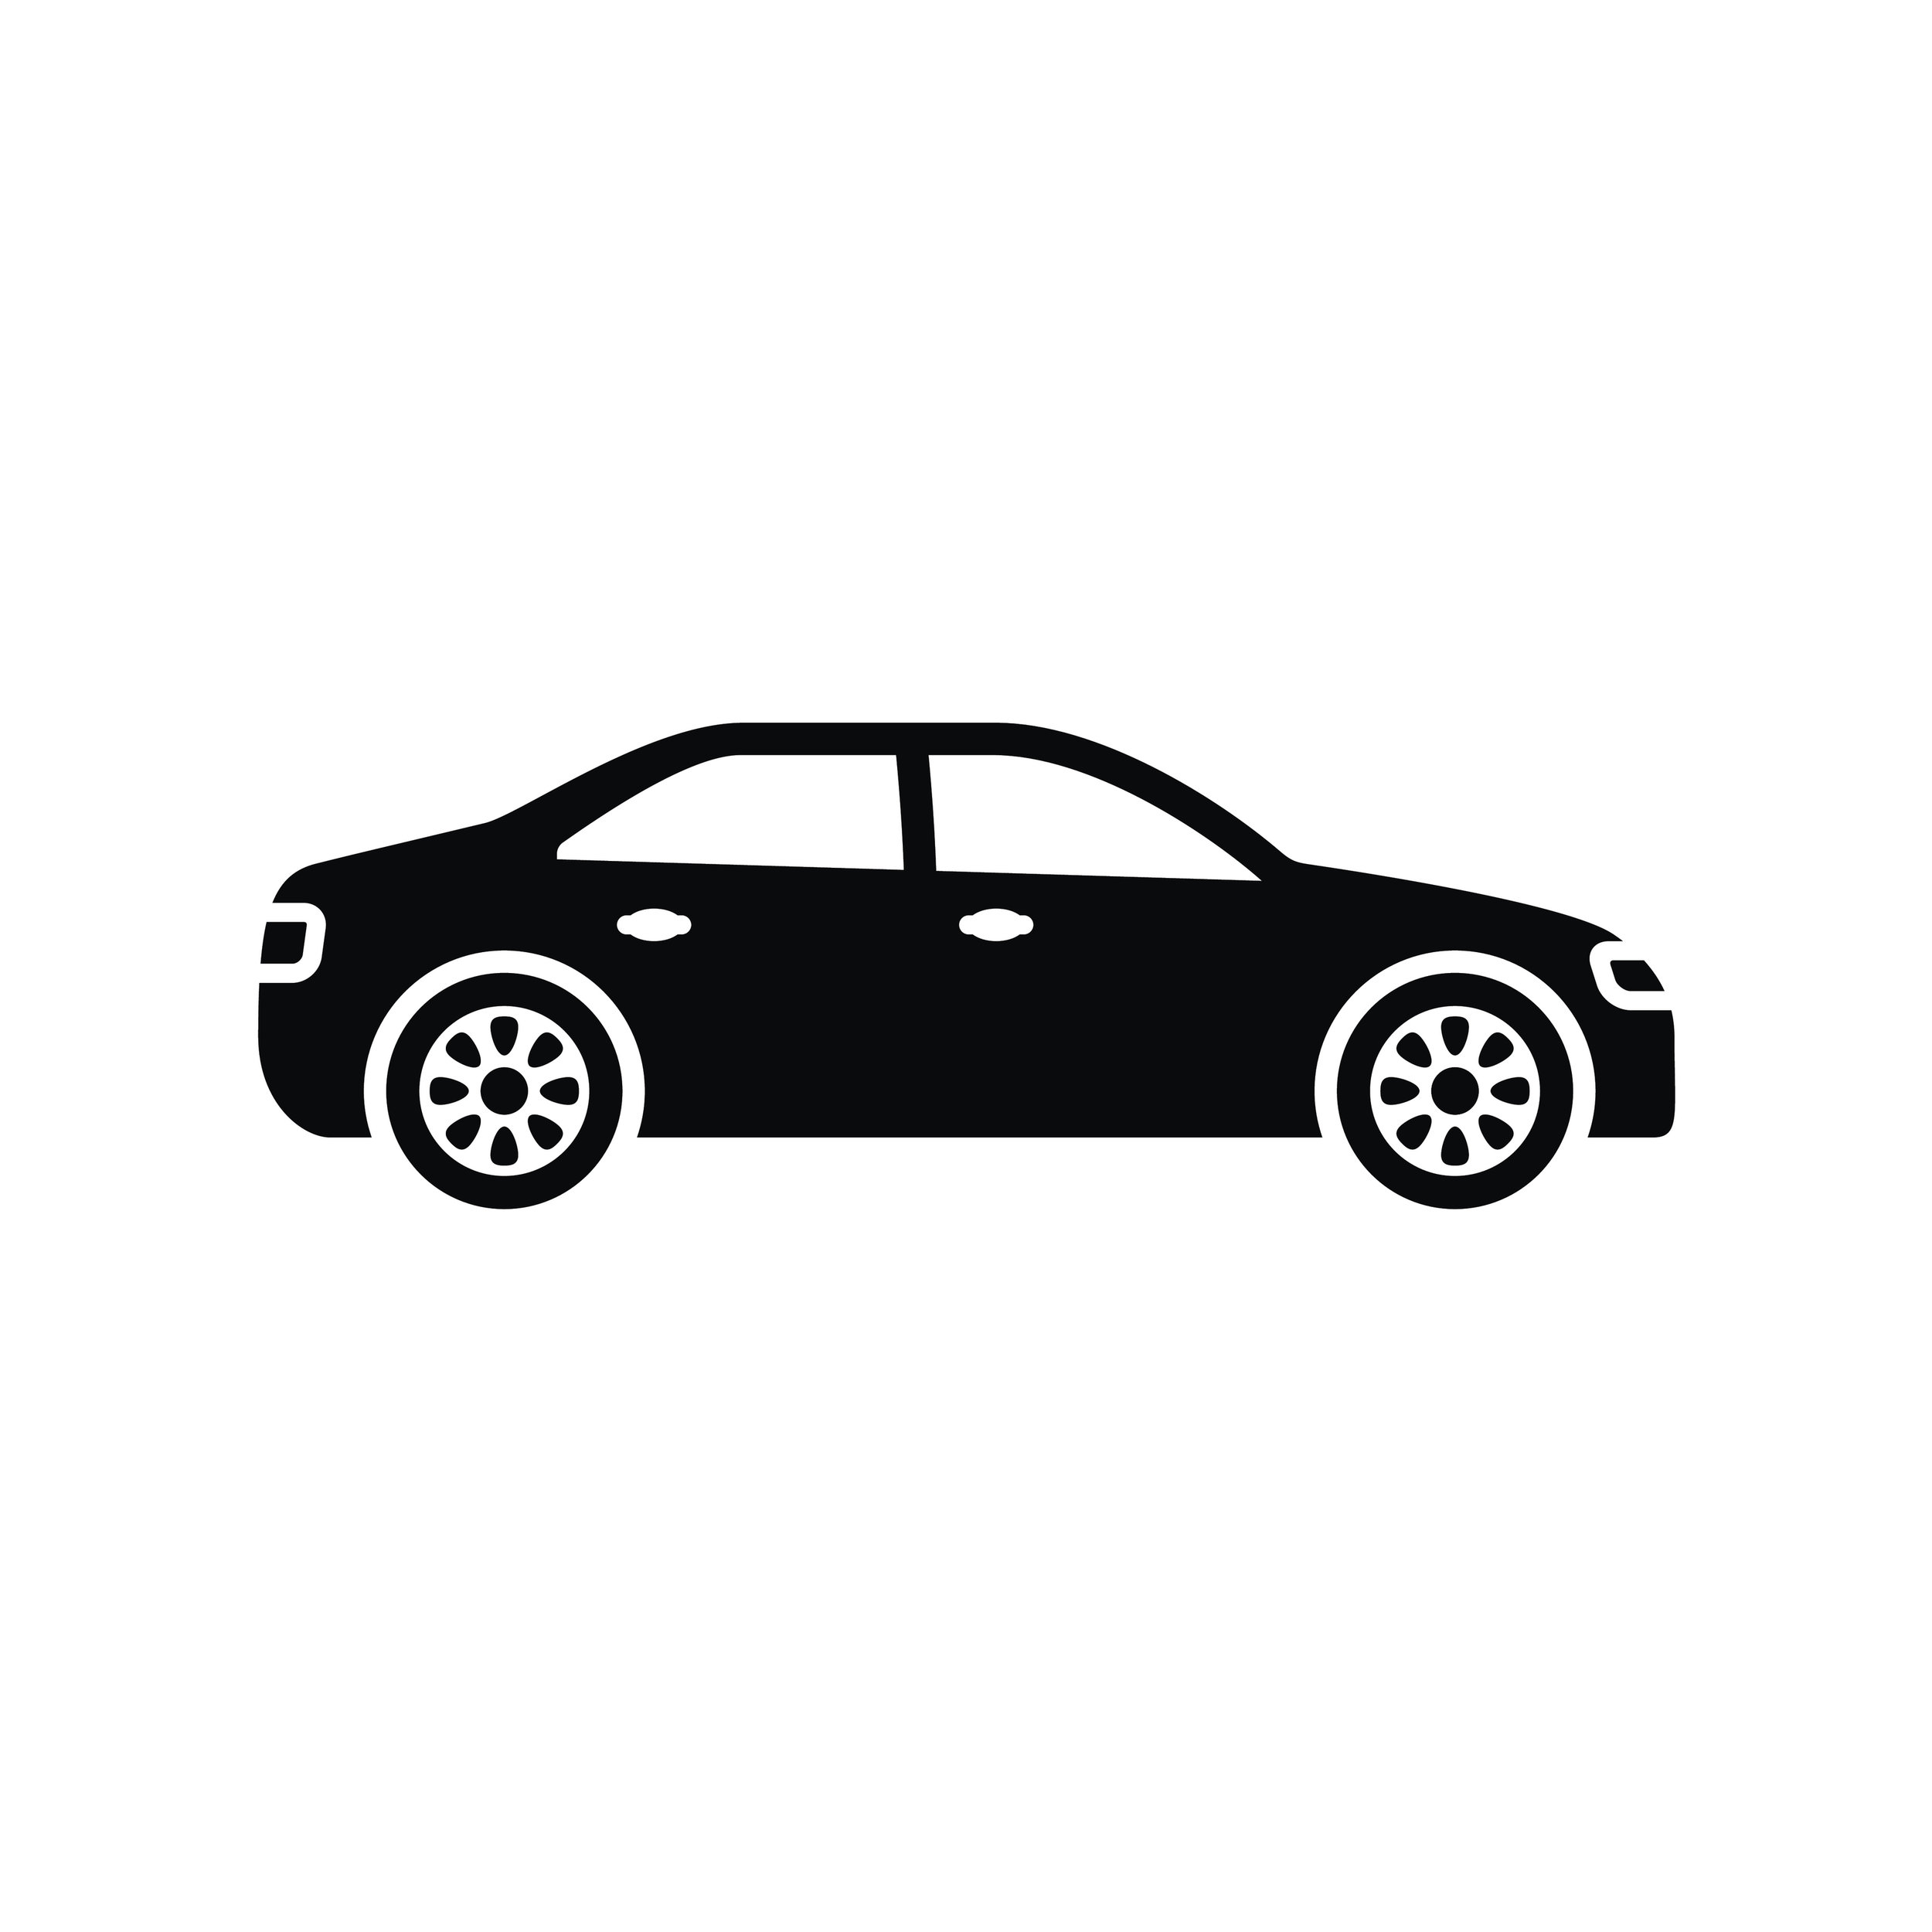 Buying a car? - Thinking about buying a new car? Or adding a second car? R&A has competitive rates!